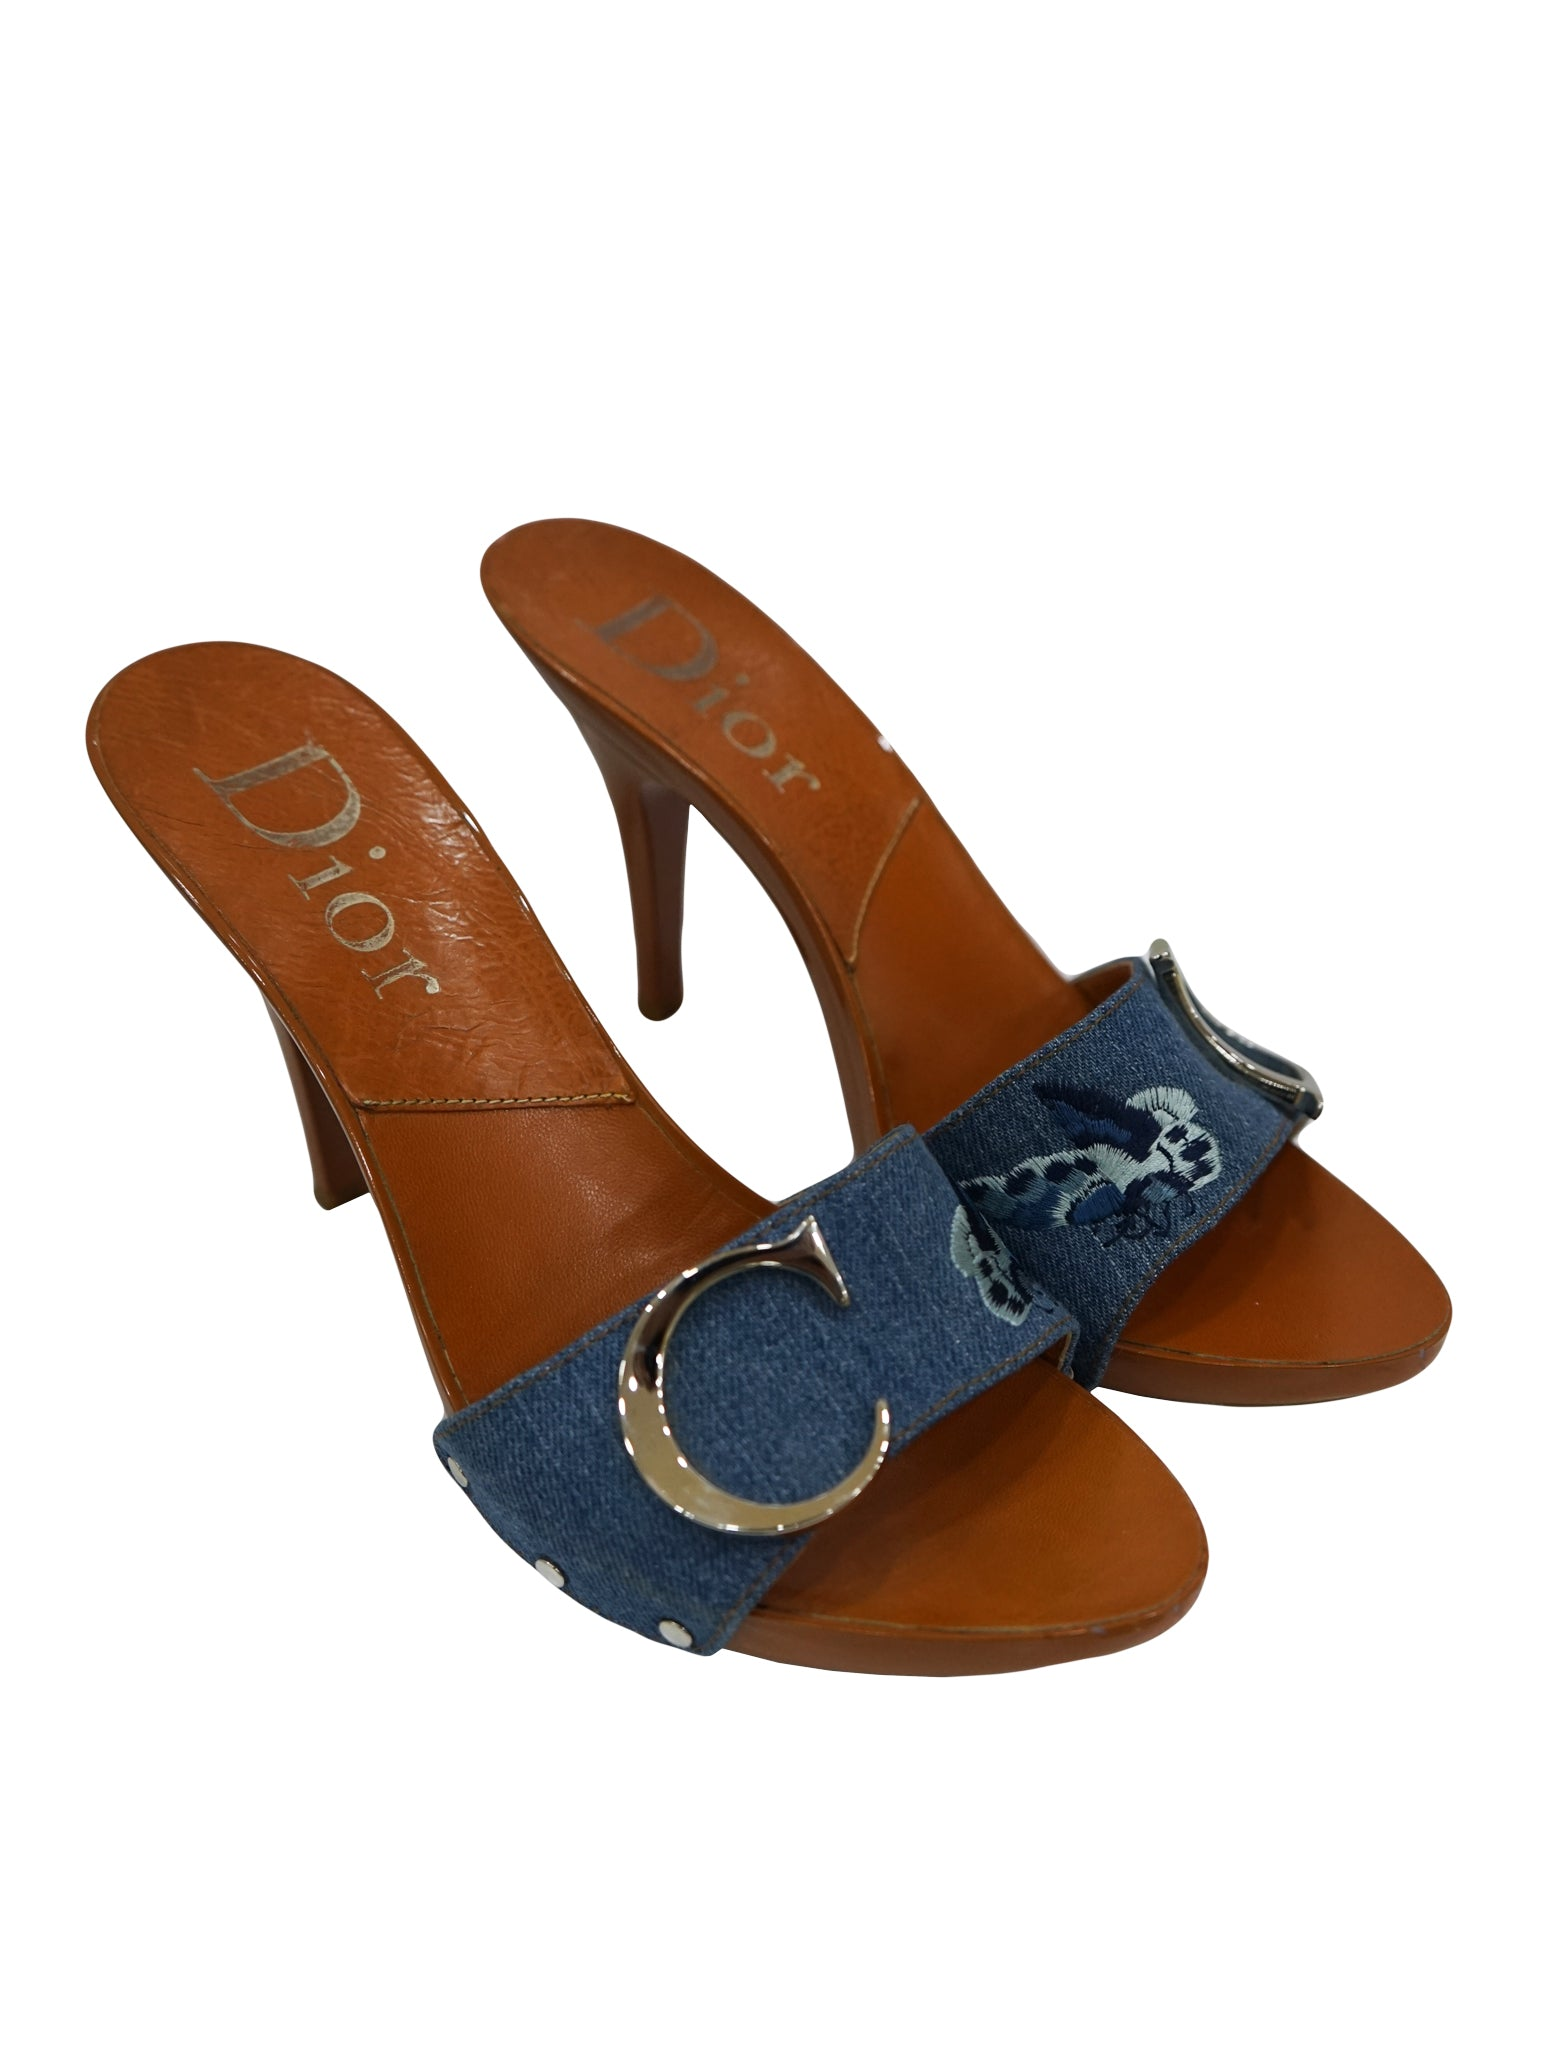 DENIM GALLIANO COLLECTION MULES SLIDES